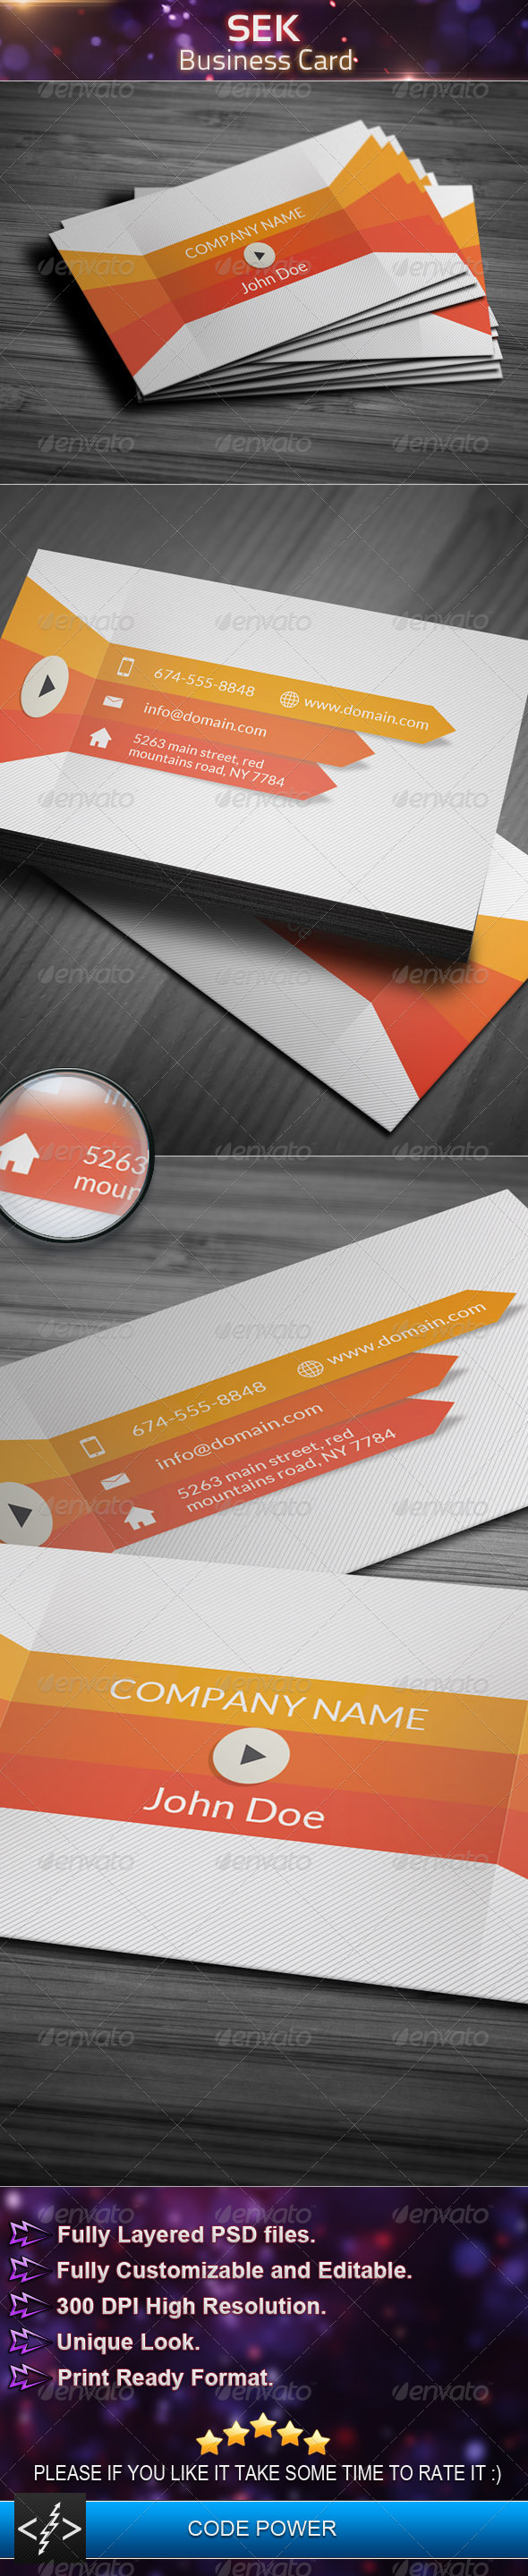 GraphicRiver Sek Business Card 4812707